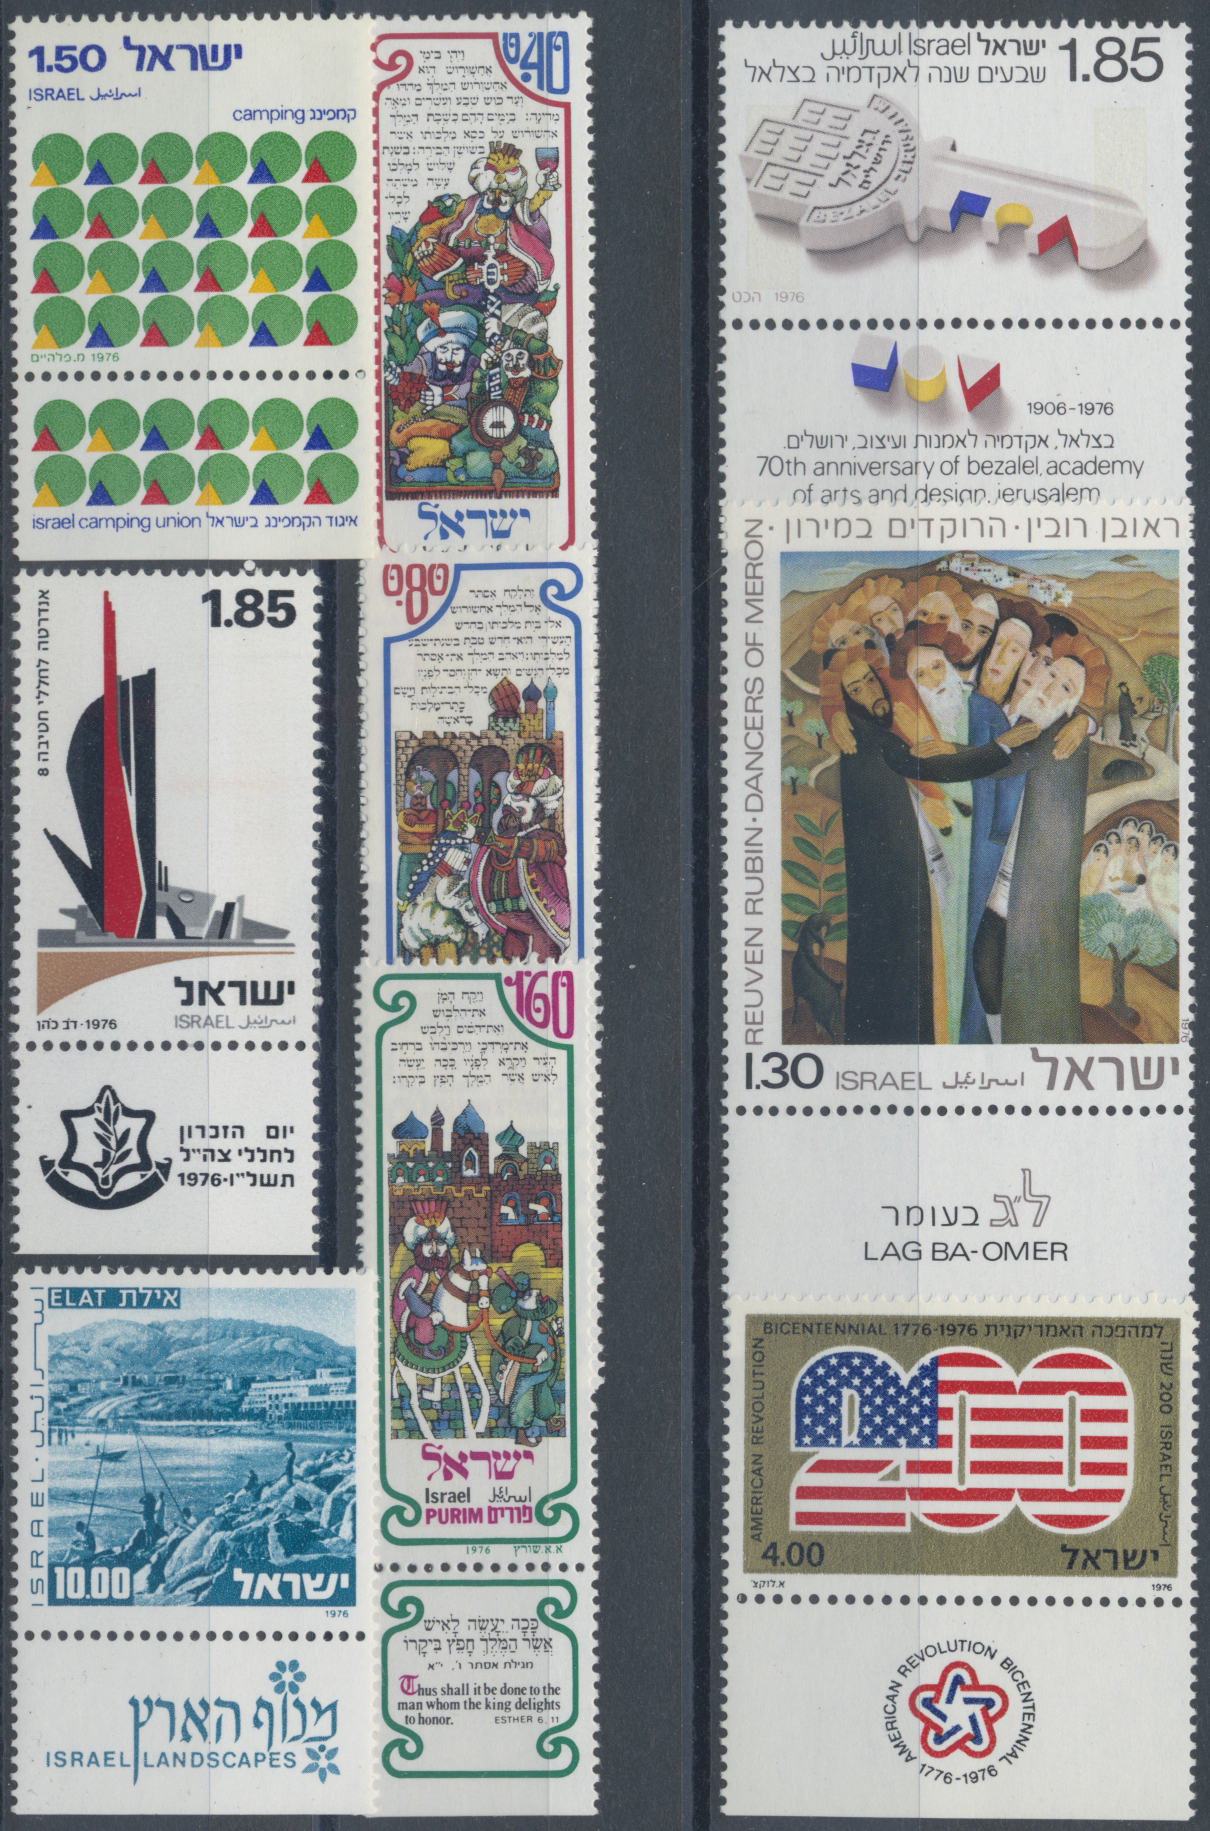 Lot 26772 - Israel  -  Auktionshaus Christoph Gärtner GmbH & Co. KG Sale #46 Gollcetions Germany - including the suplement